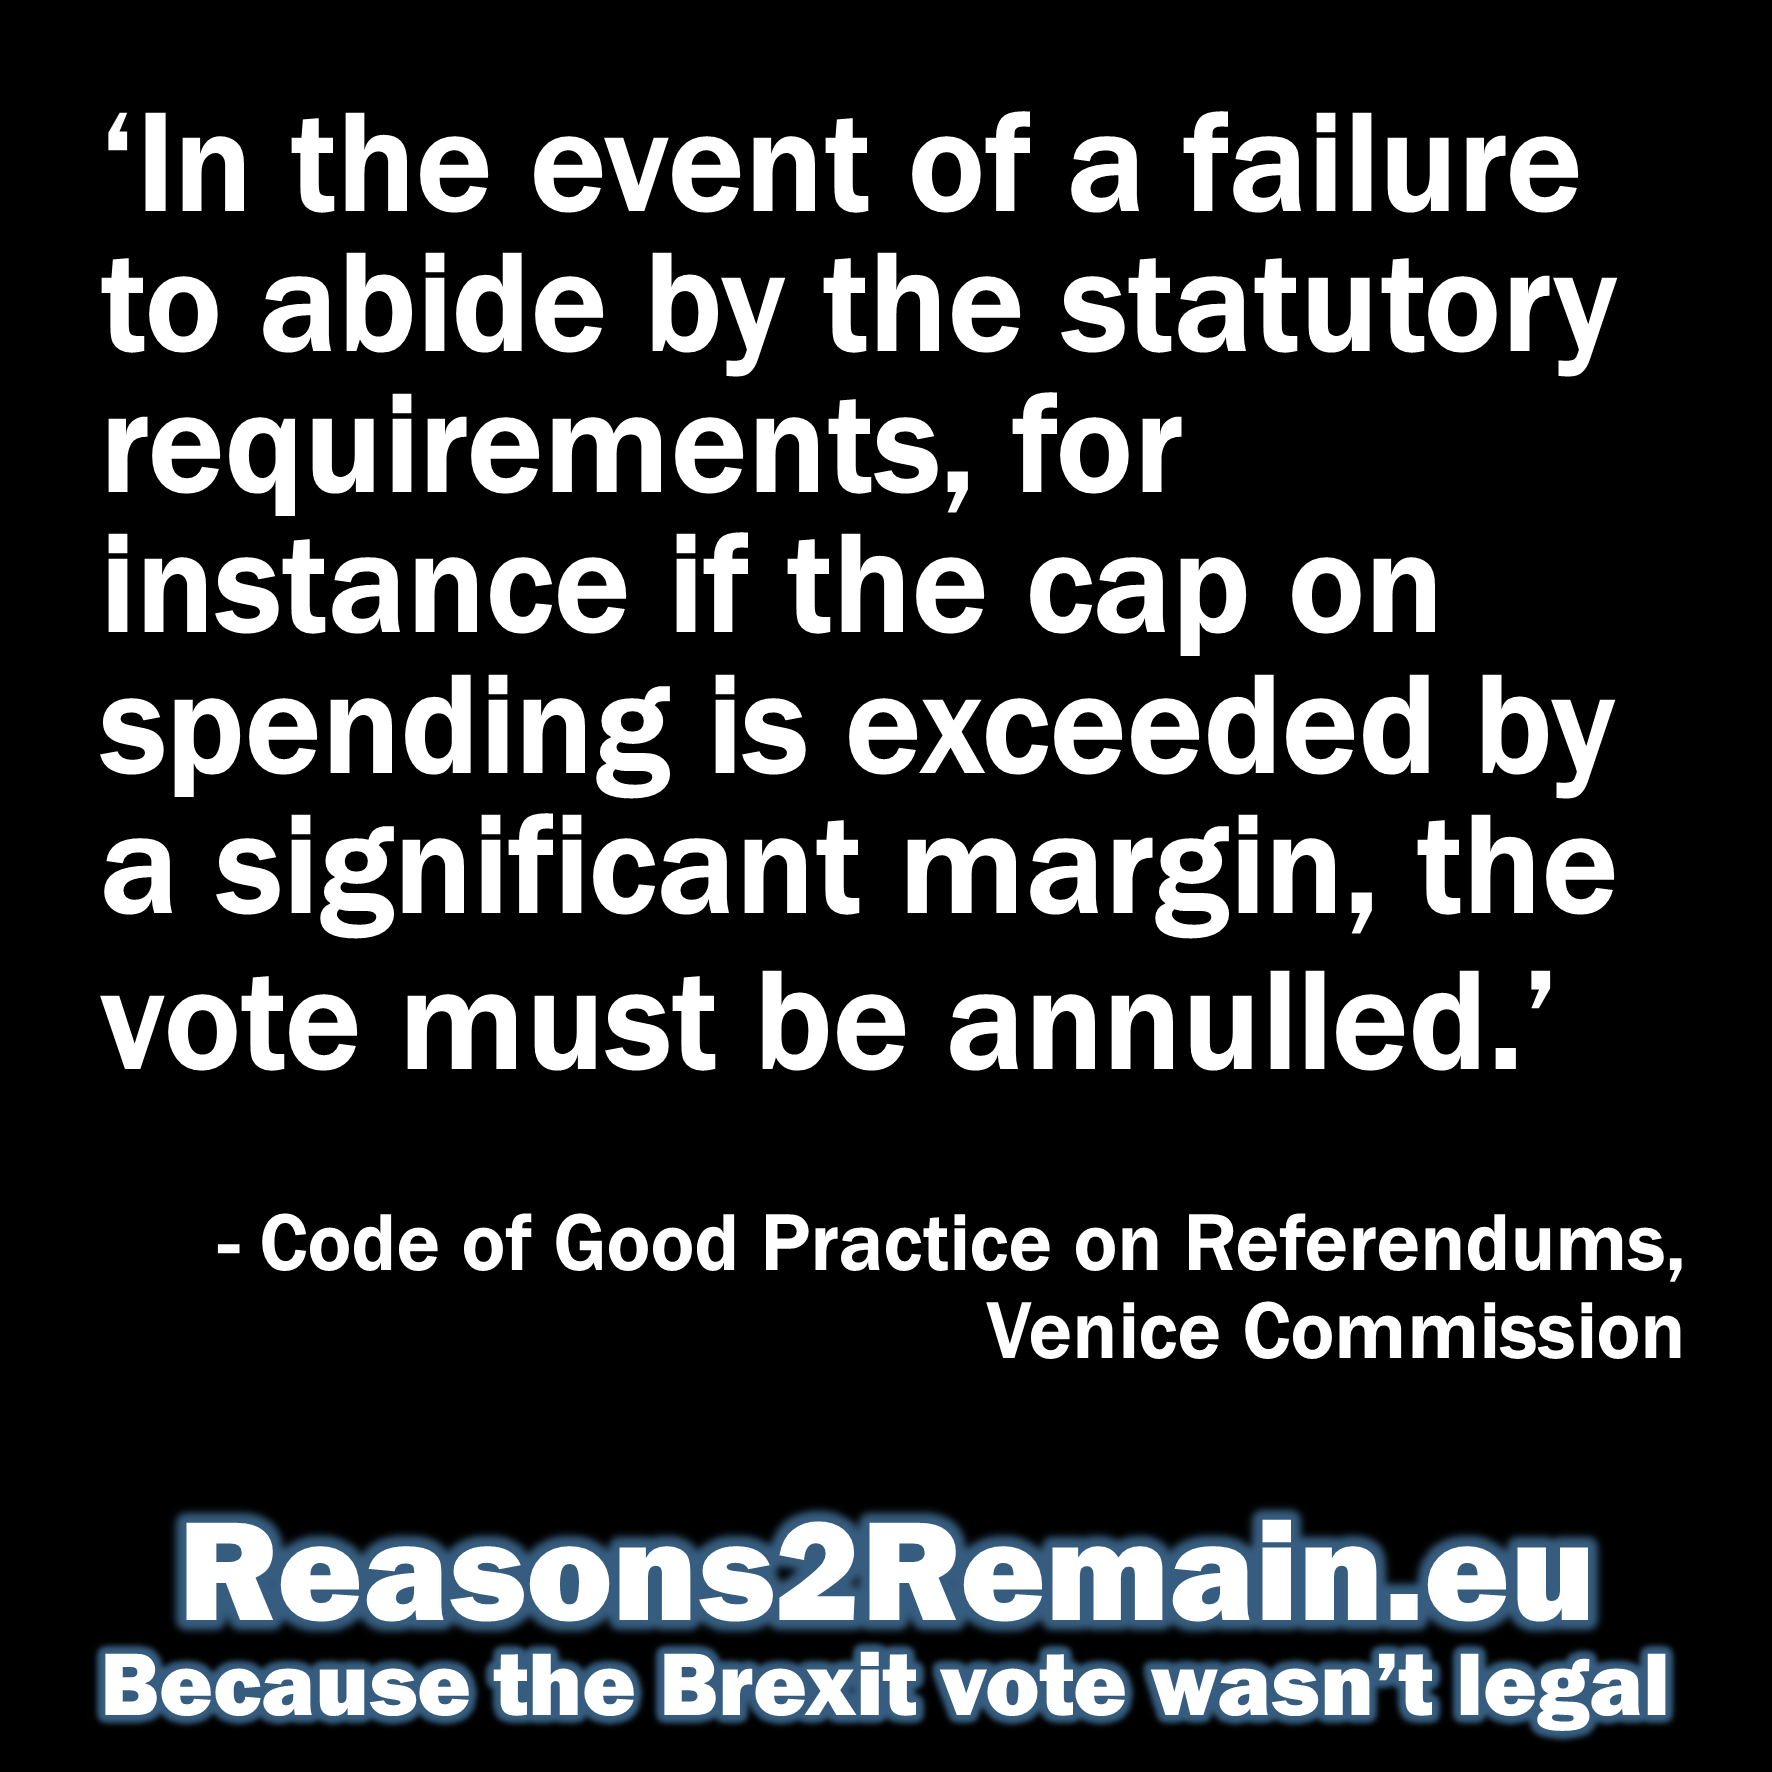 Should the EU referendum be annulled?